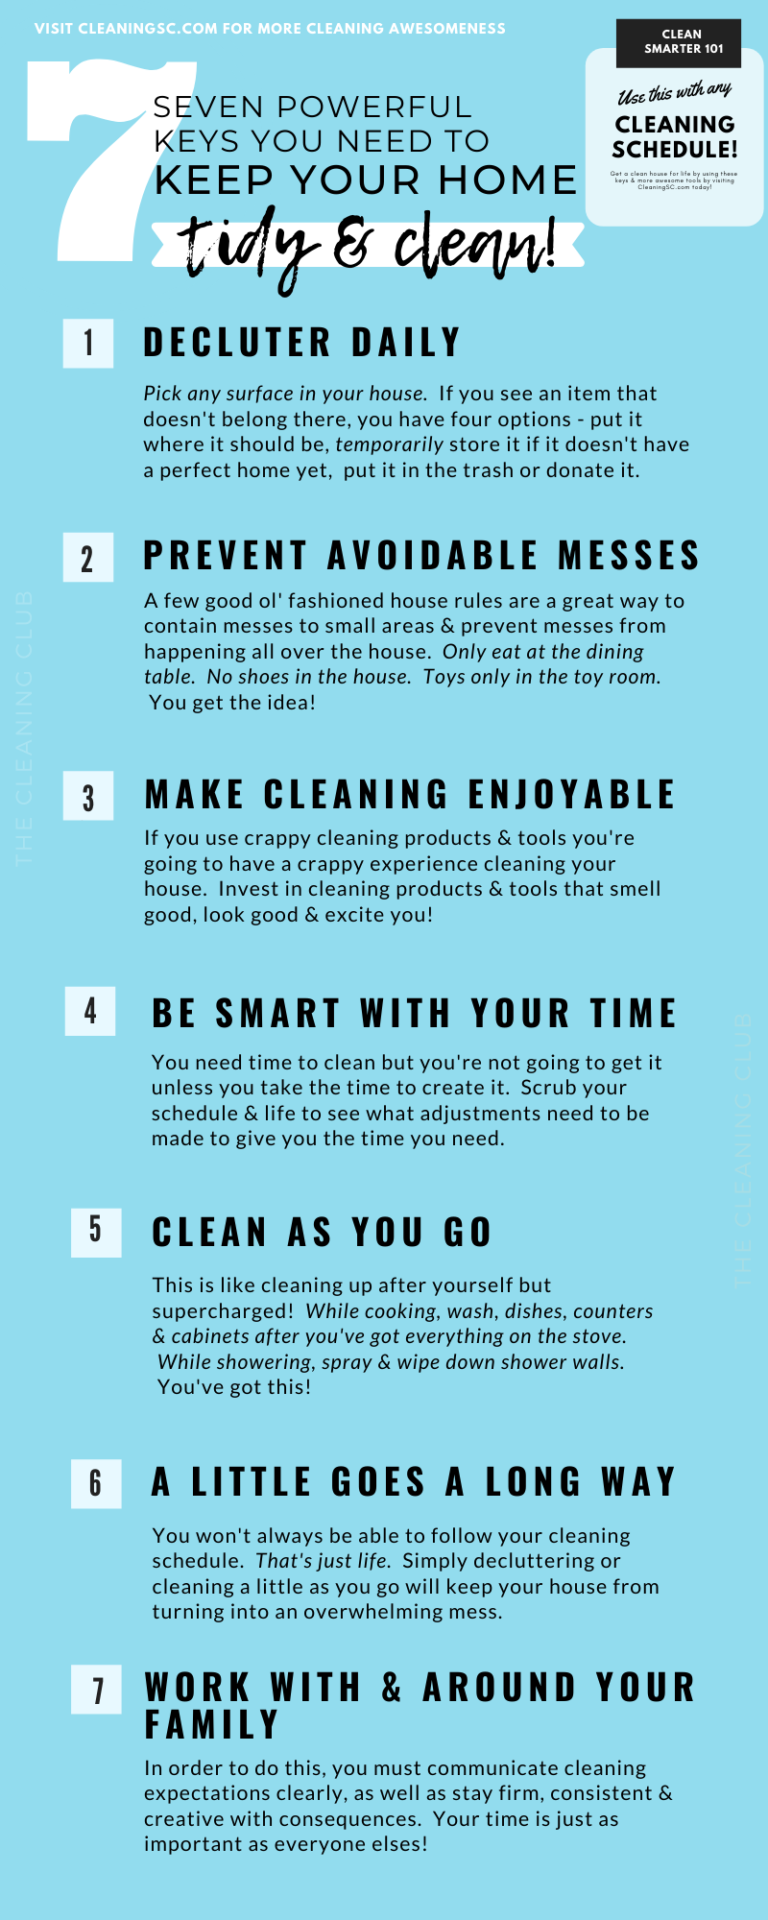 The Ultimate Cleaning Schedule For Working Moms Plus 7 Essential Keys To Make It Fail Proof The Cleaning Working Moms Cleaning Schedule House Cleaning Tips